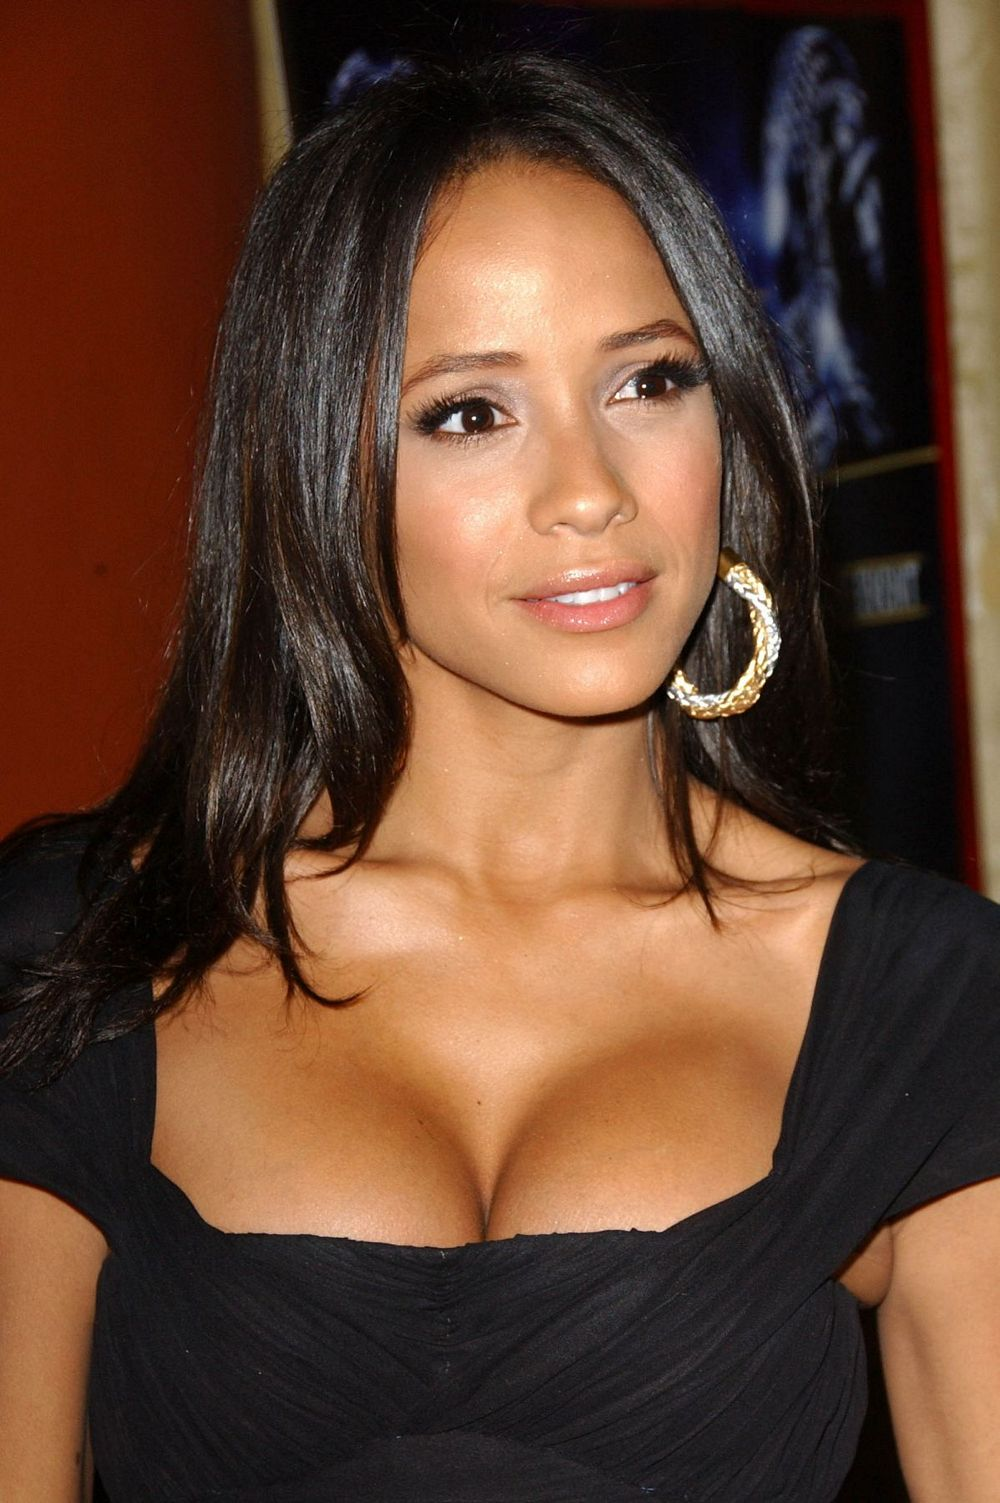 dania ramirez breast implants